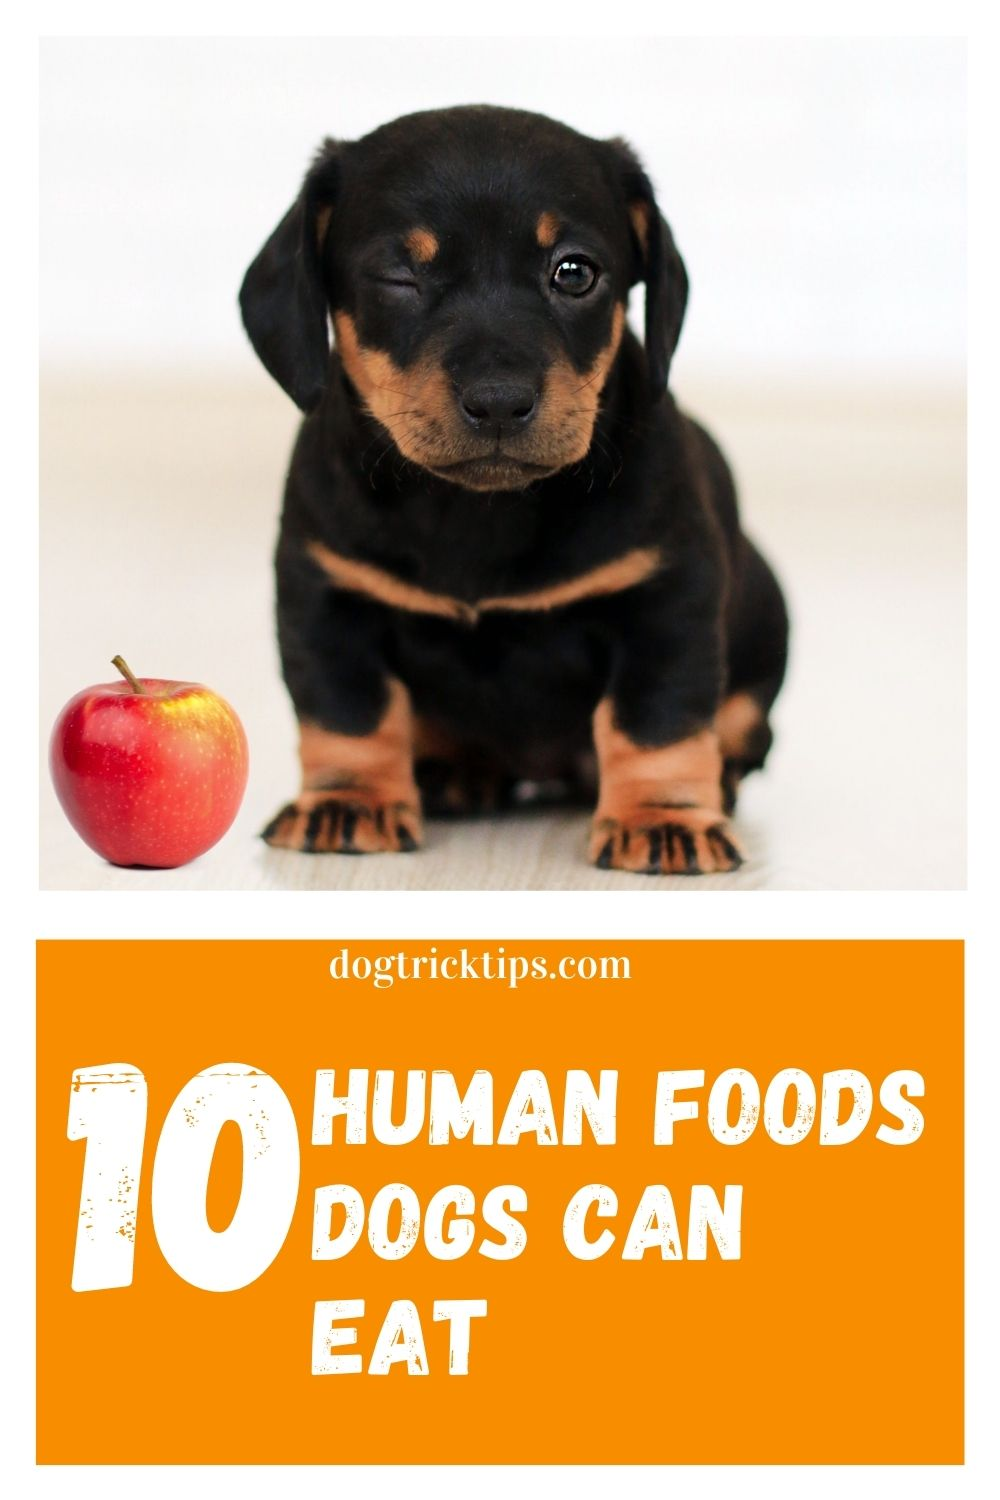 10 Human Foods Dogs Can Eat